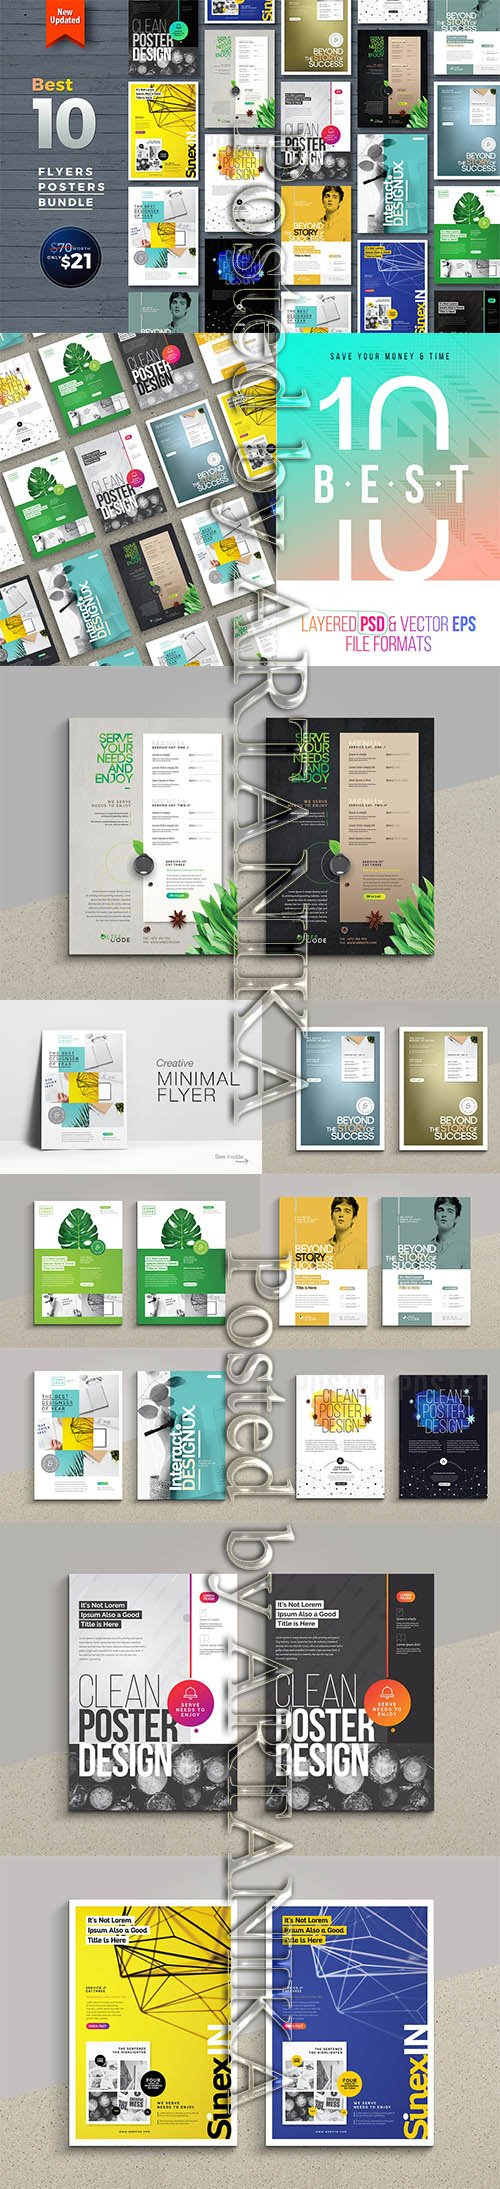 CreativeMarket - Best 10 Flyer Poster Bundle 2247097